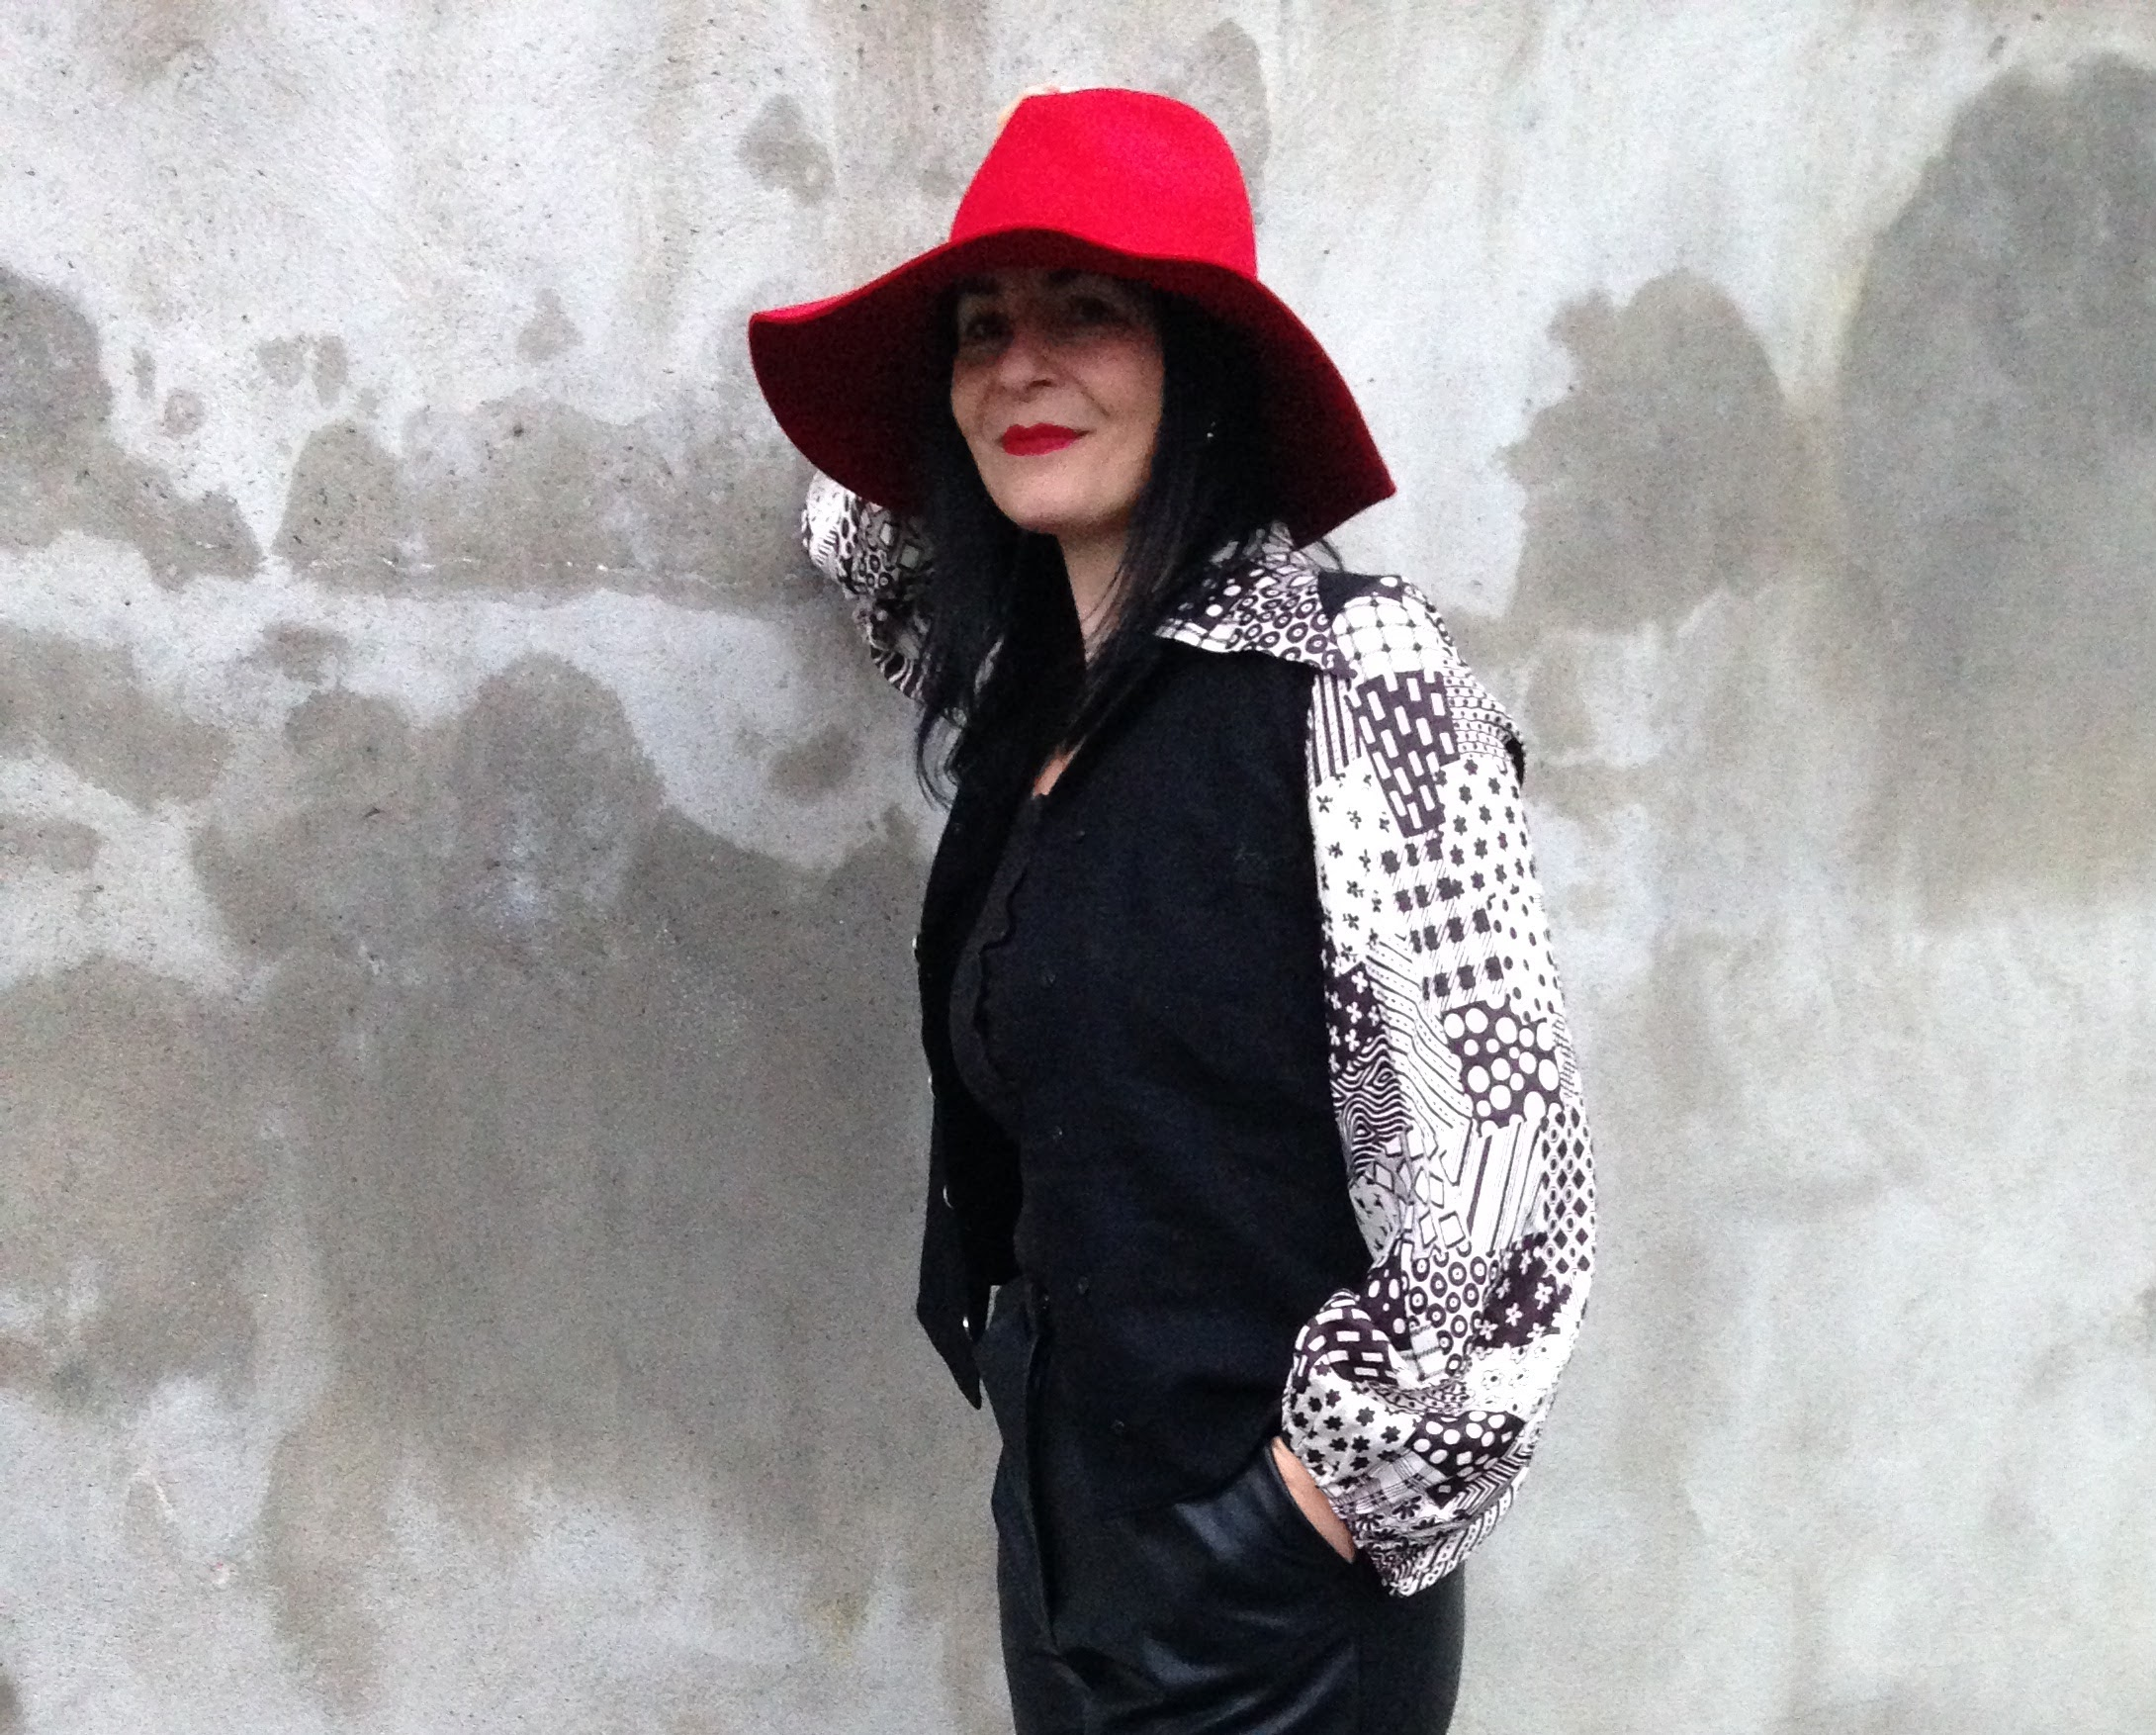 Magic touch of HAPPY RED! Hat from Zara and monochrome top 1970's vintage.